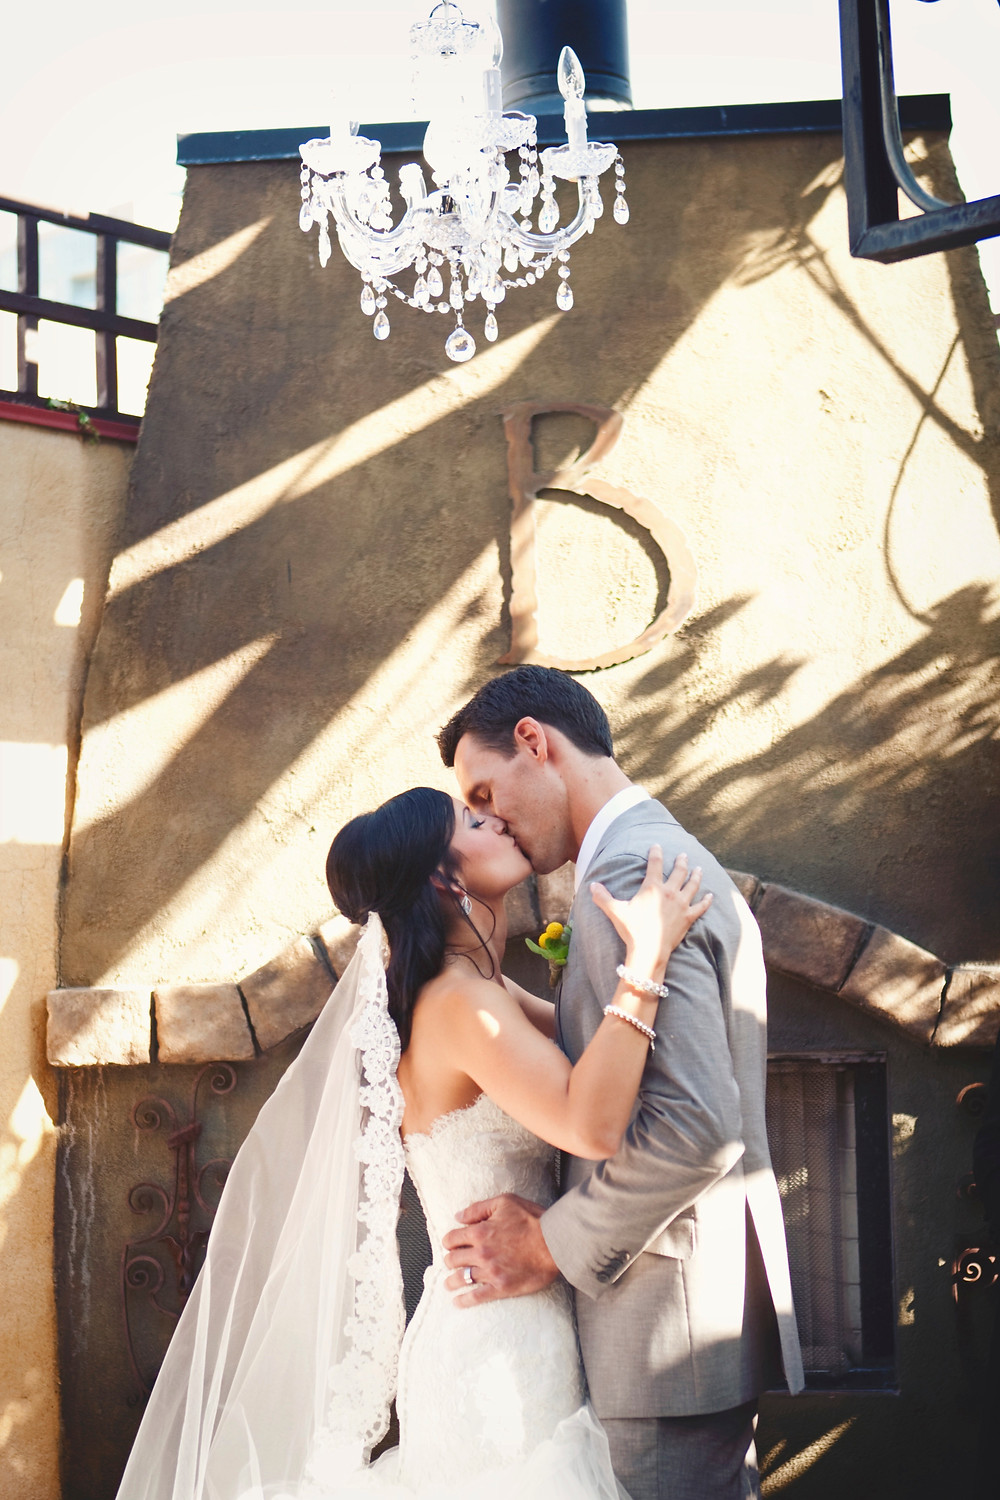 A bride and groom kiss under a crystal chandelier at their rustic Italian inspired wedding.